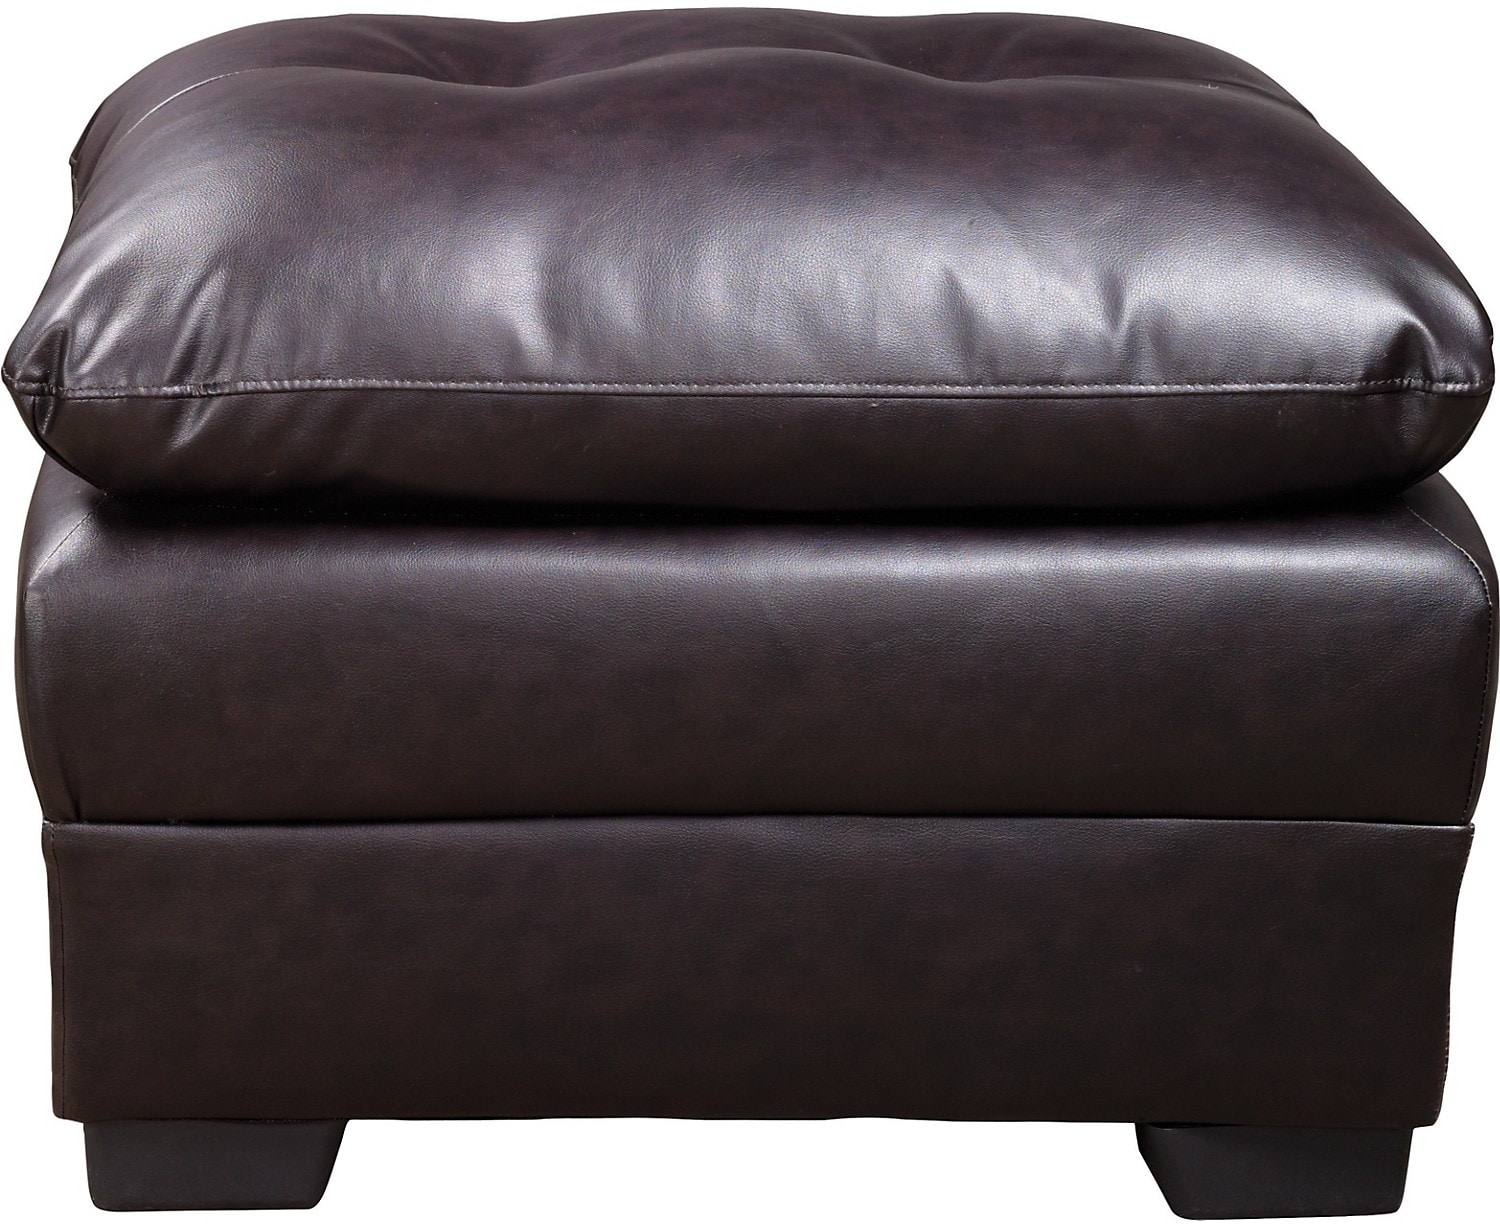 Living Room Furniture - E6 Brown Bonded Leather Ottoman